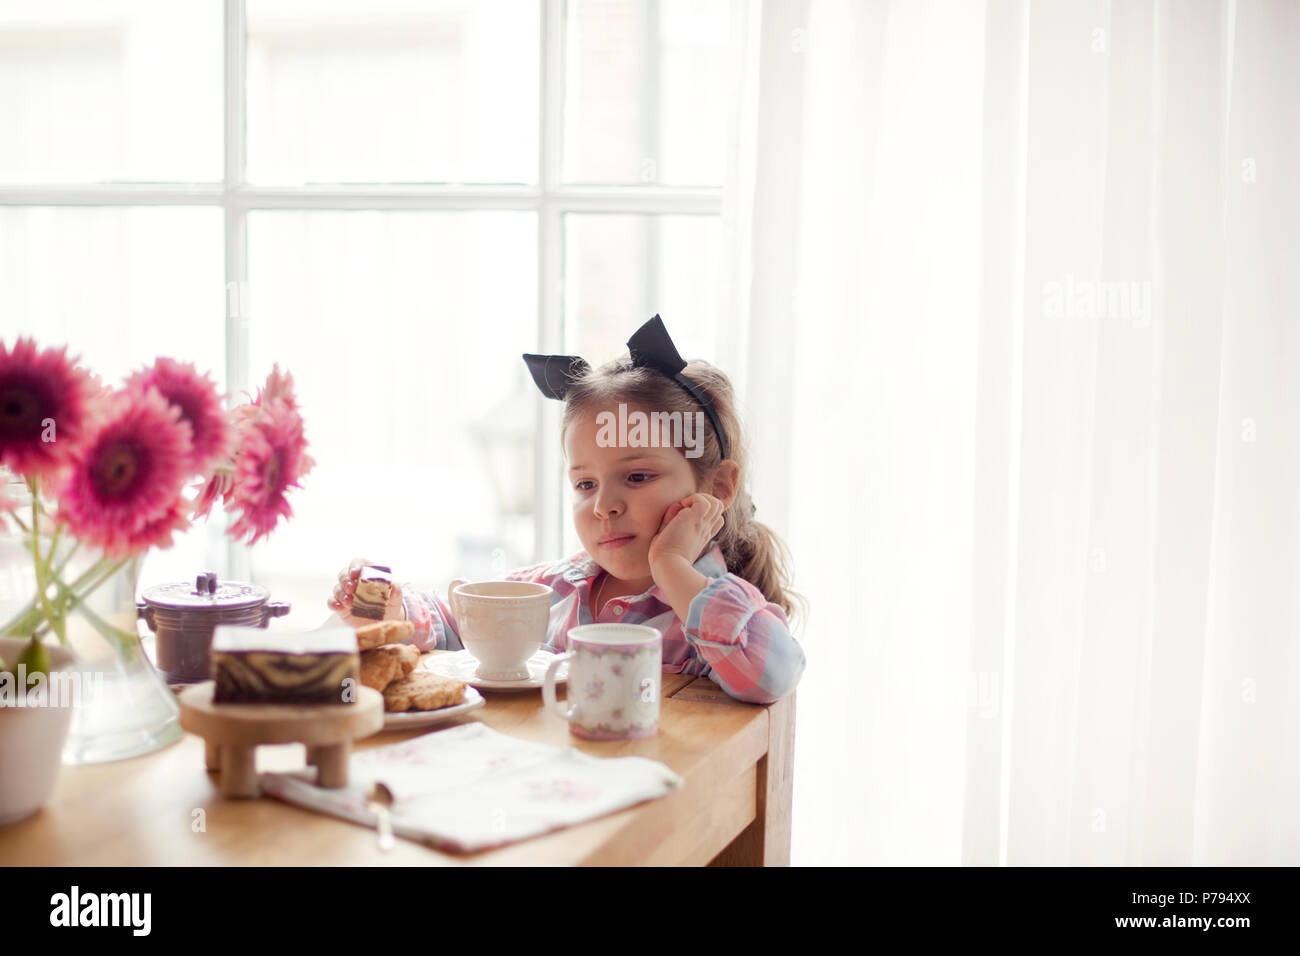 A little girl at the table is eating breakfast by the window. Good morning. Copy space - Stock Image